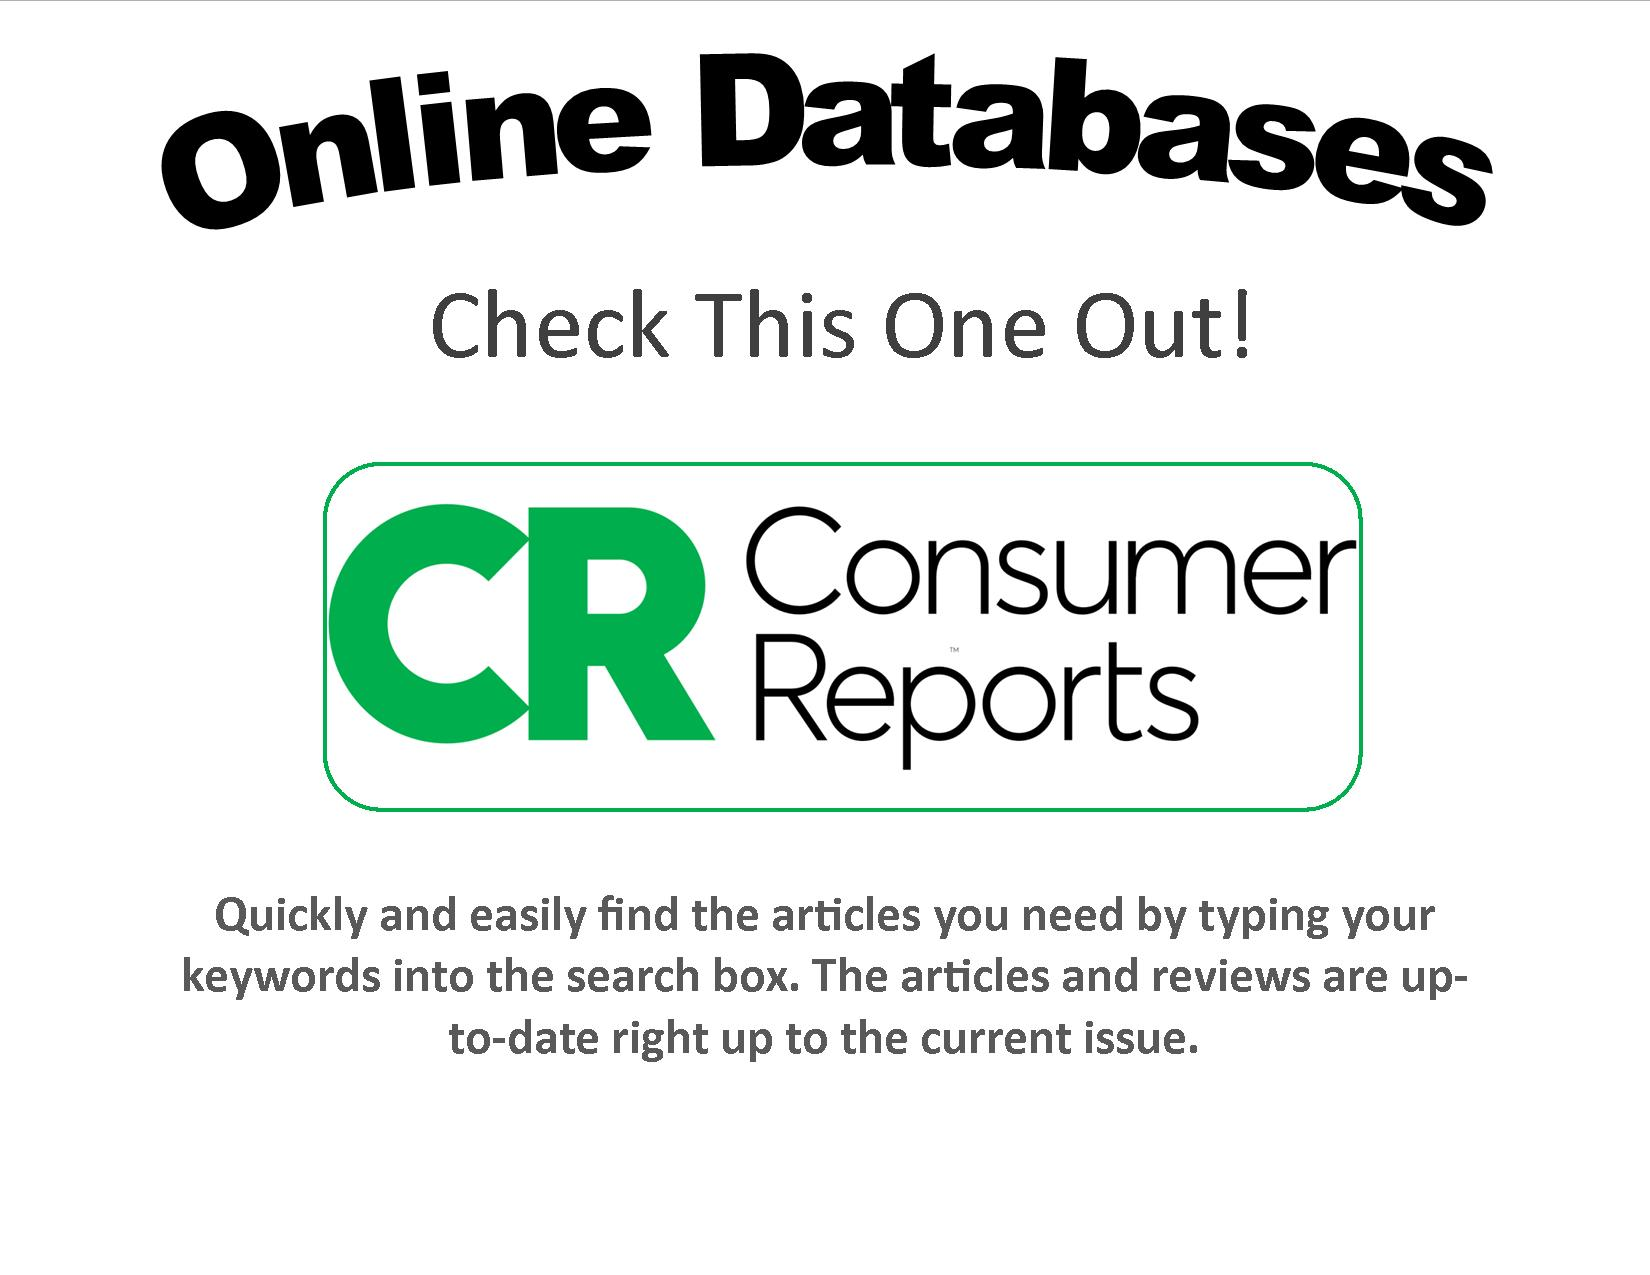 Consumer Reports flyer